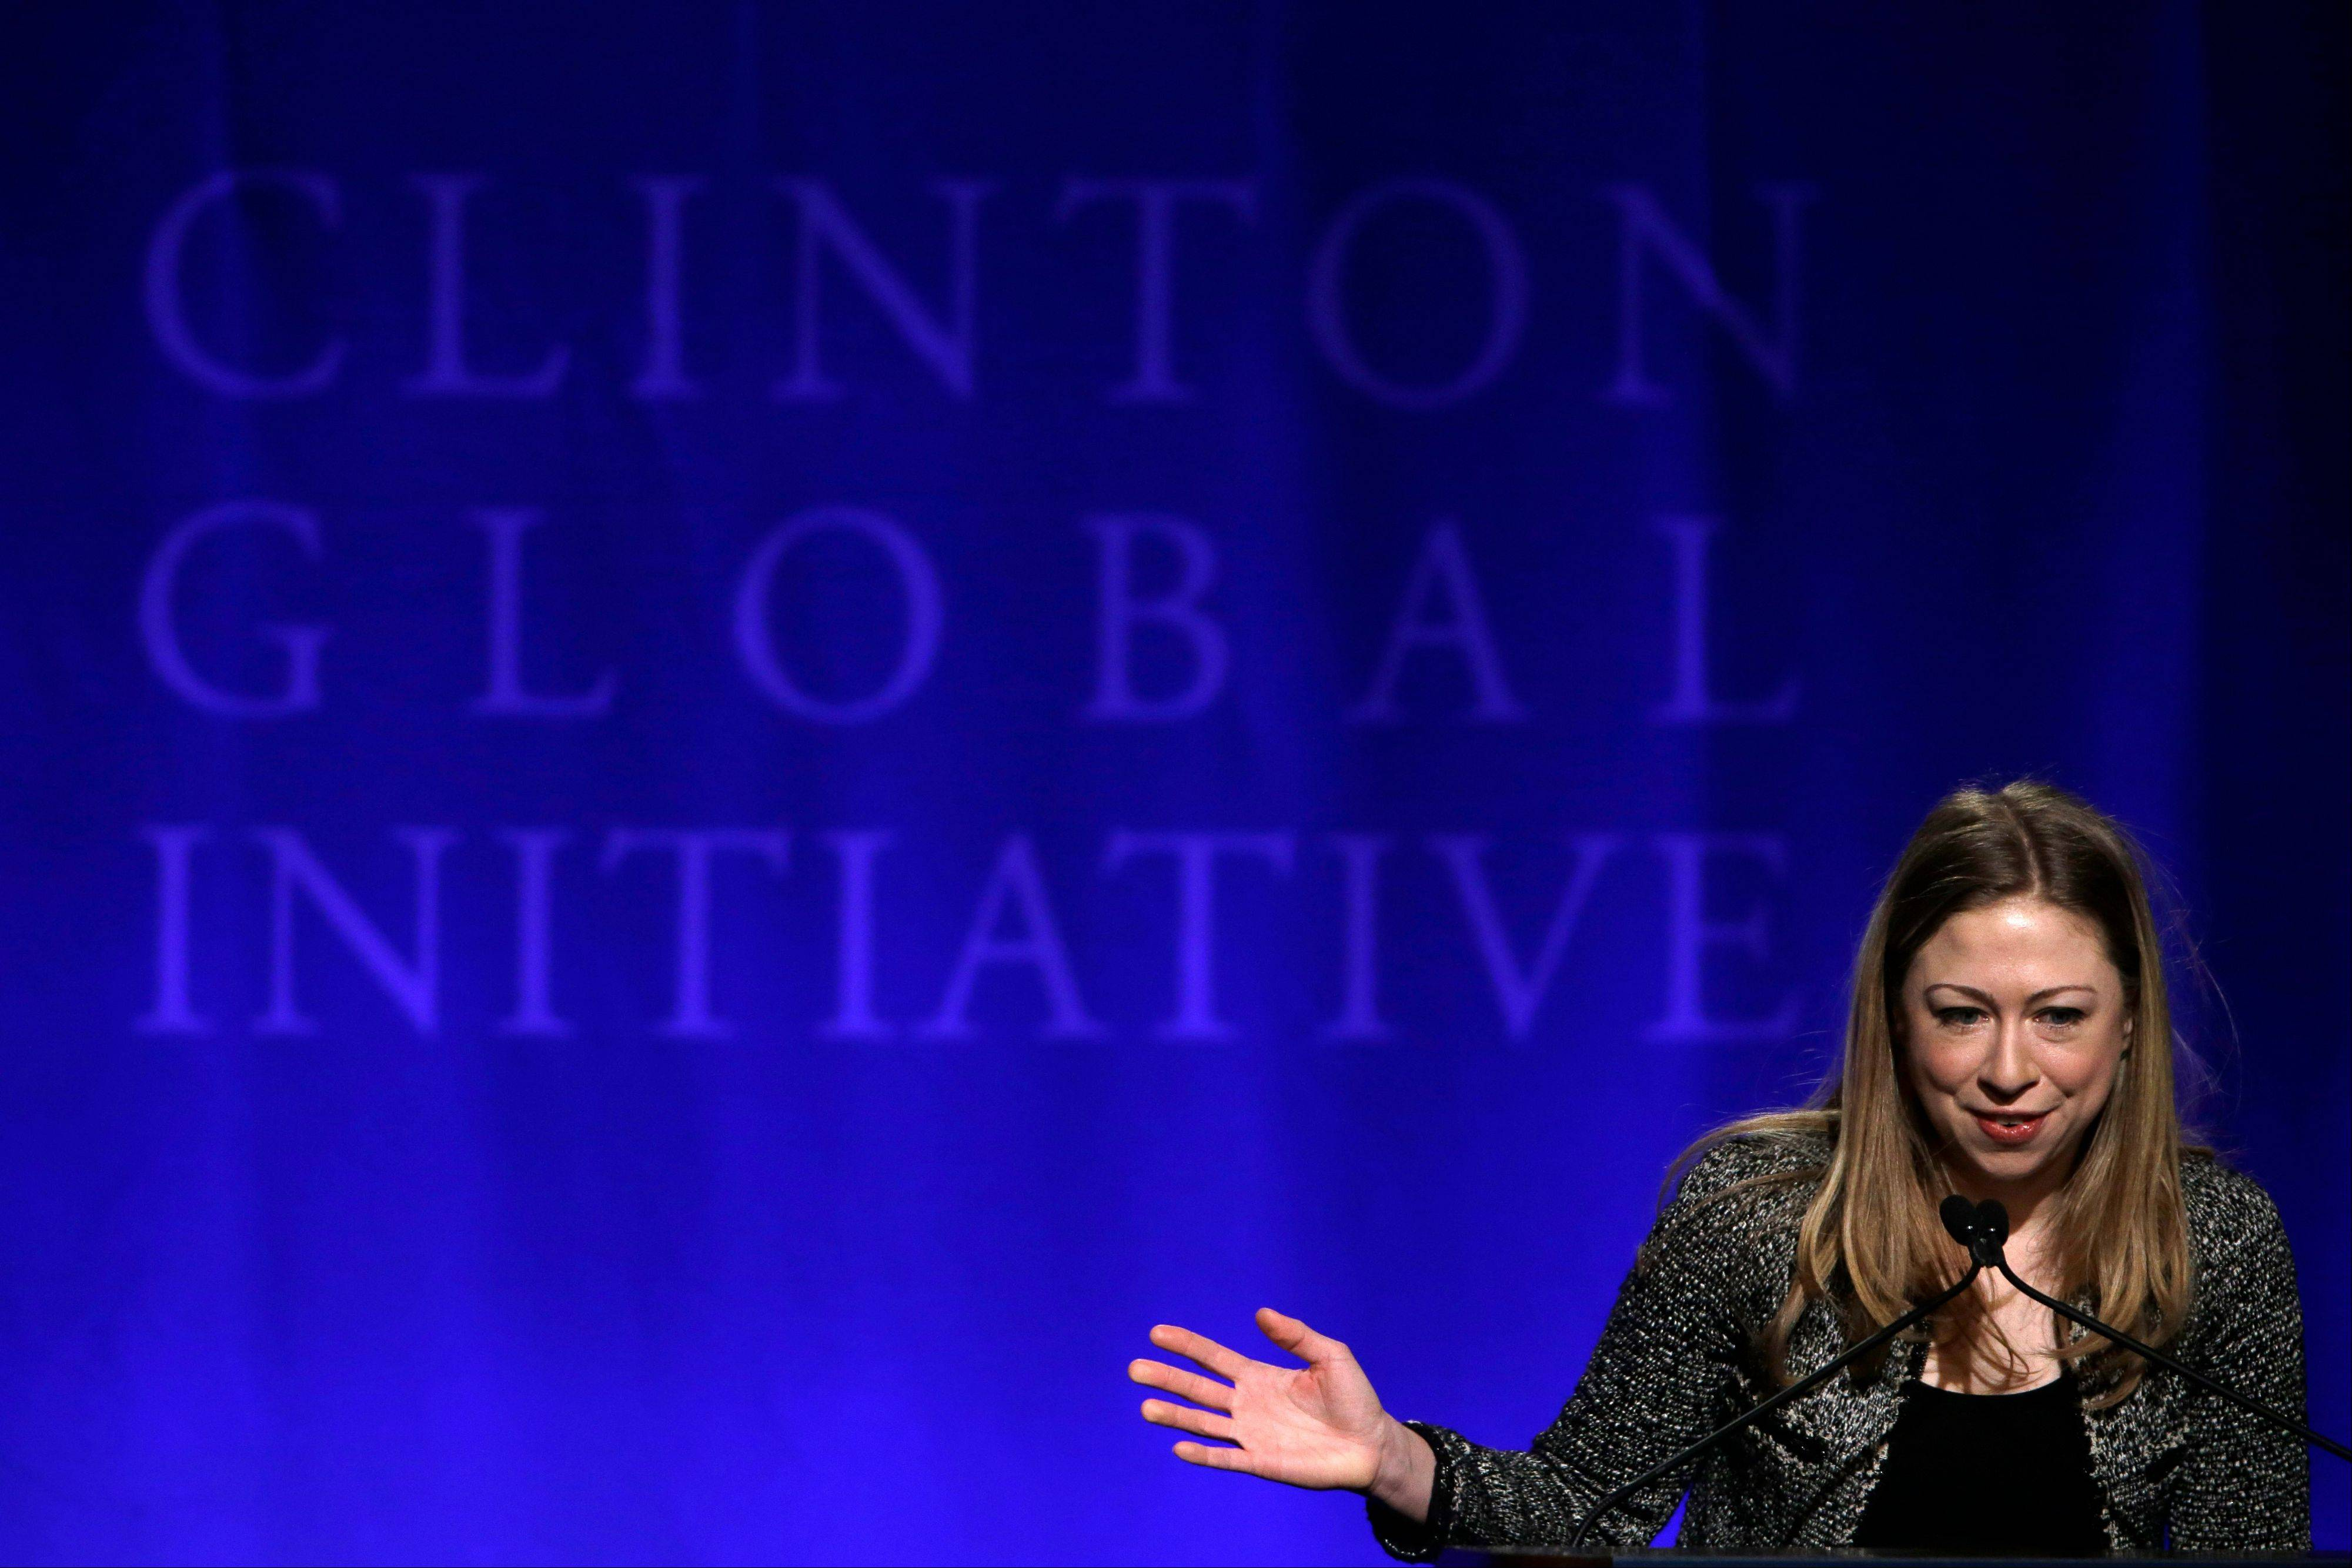 Chelsea Clinton speaks during a Clinton Global Initiative plenary session on empowering women at Washington University Saturday, April 6, in St. Louis. More than 1,000 university students from 75 countries and all 50 states are gathered for a weekend of sessions seeking practical and innovative solutions to the world's problems.